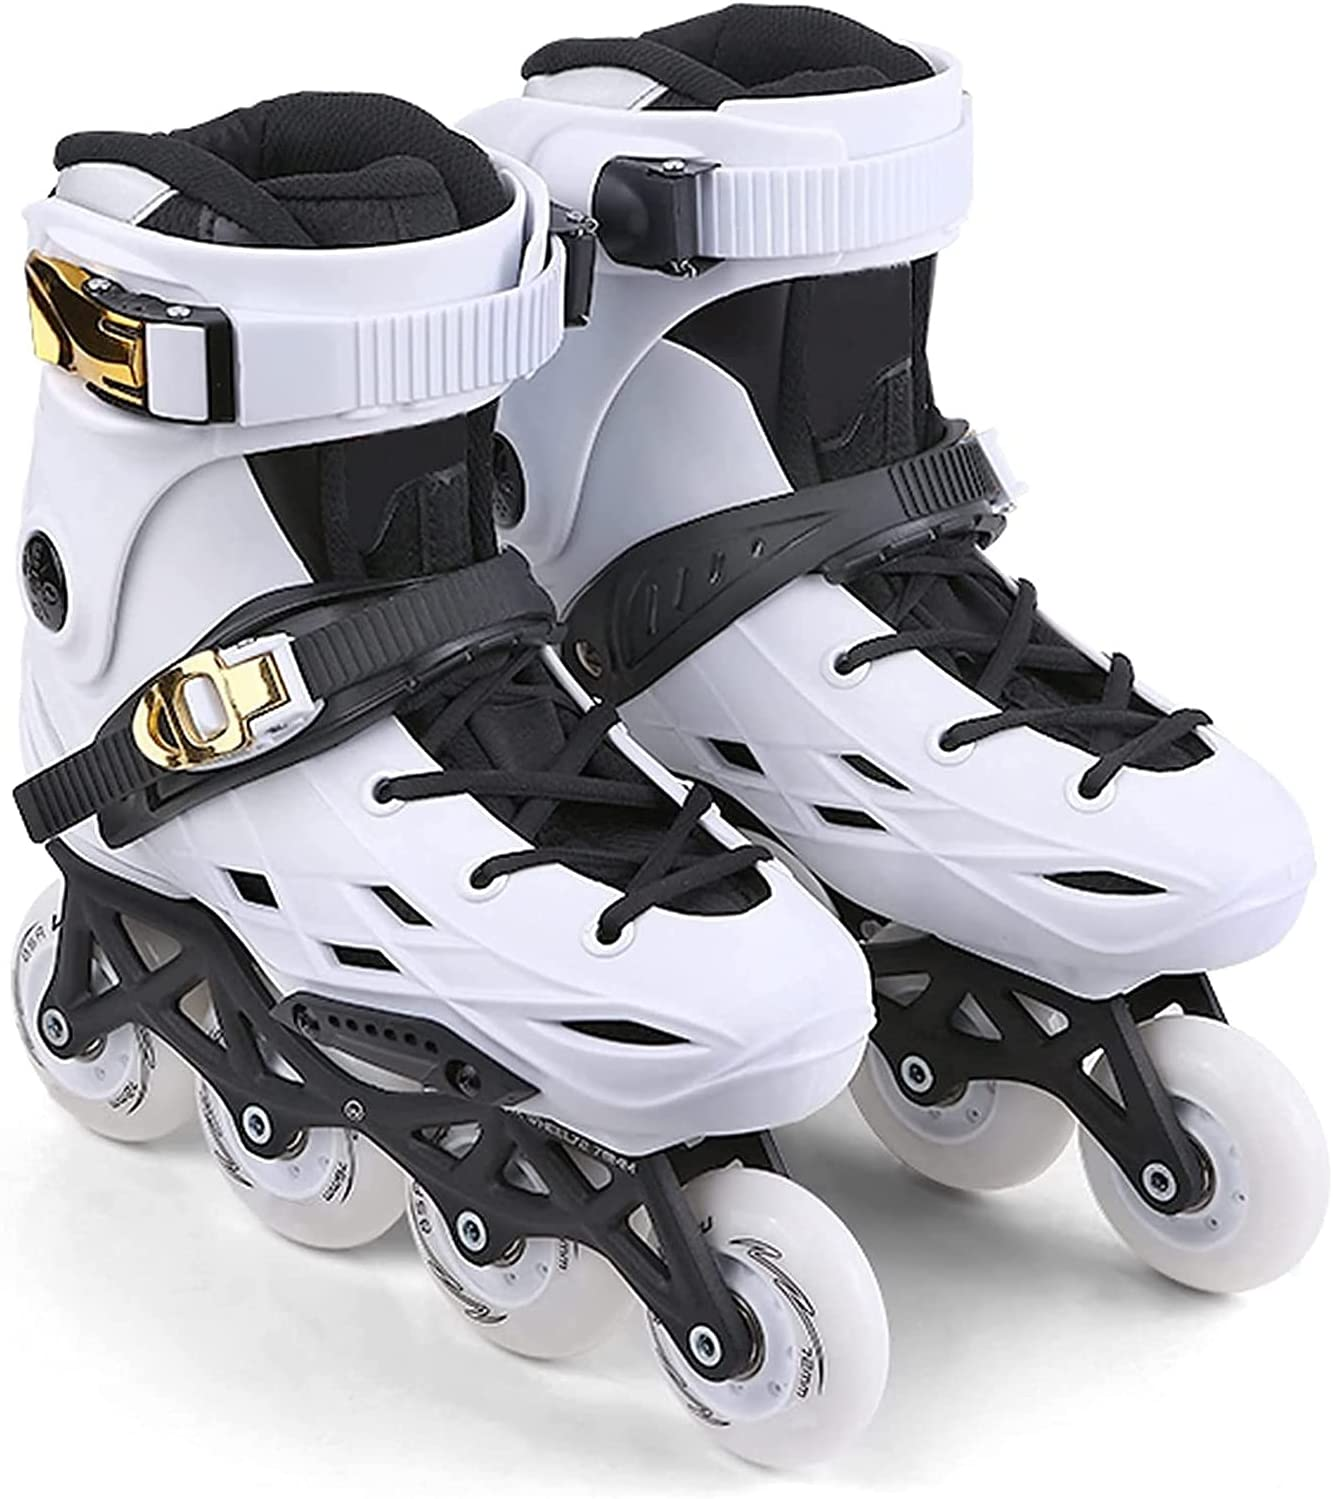 Inline Skates For Adult Animer and price revision Performance Fitness Unisex Roller NEW